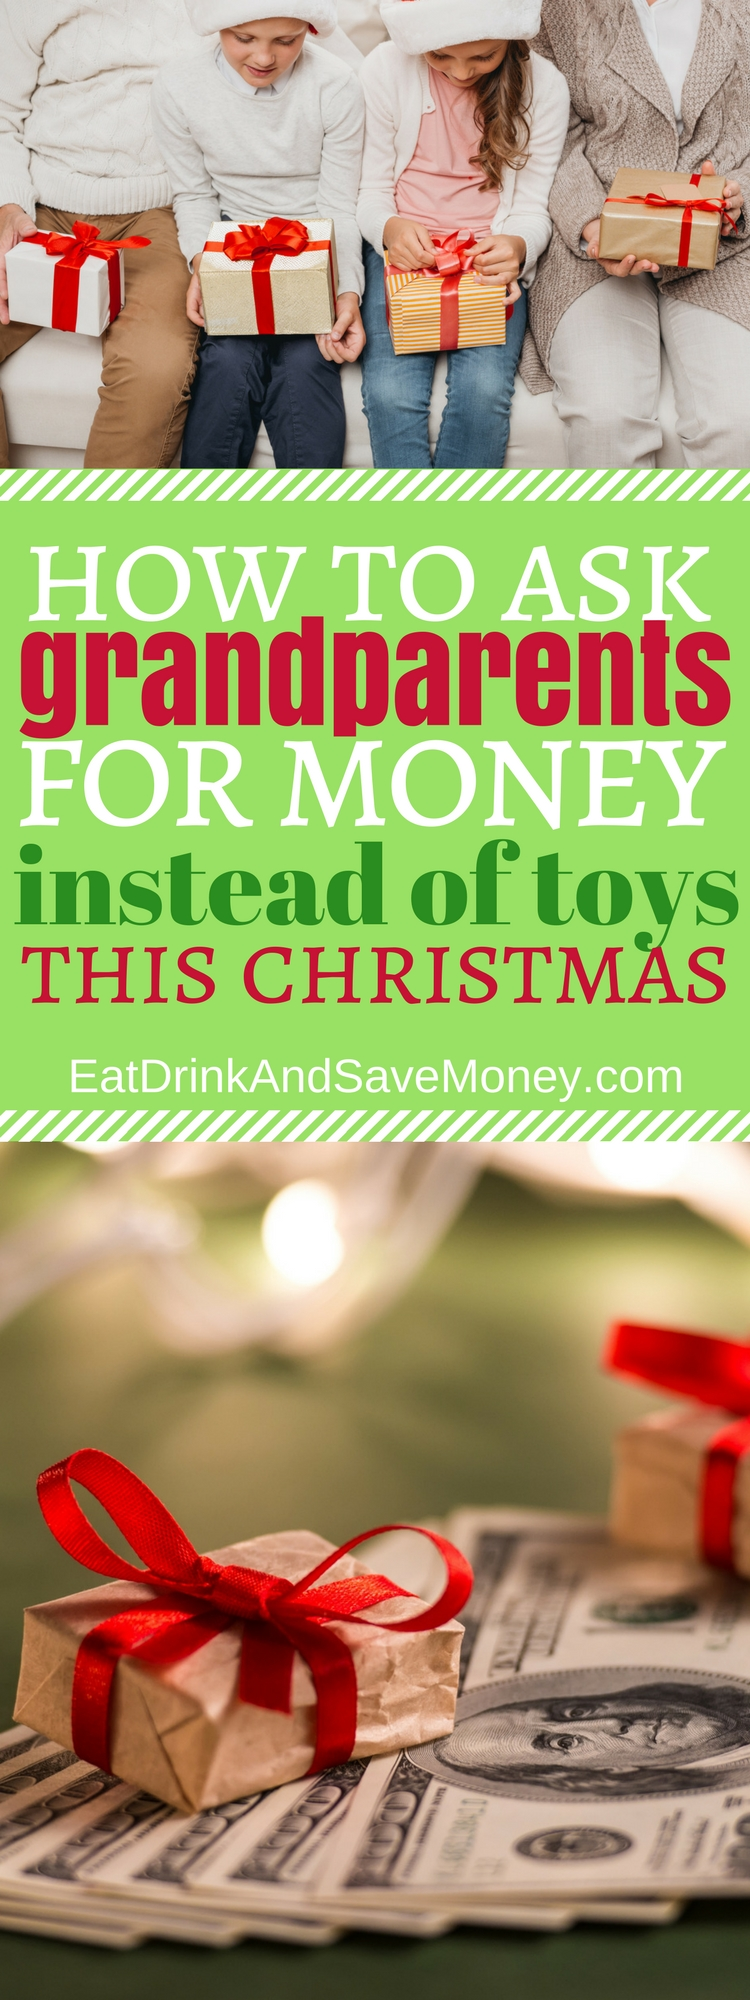 How to ask grandparents for money instead of toys this Christmas #christmas #money #savemoney #toys #holidays #savings #family